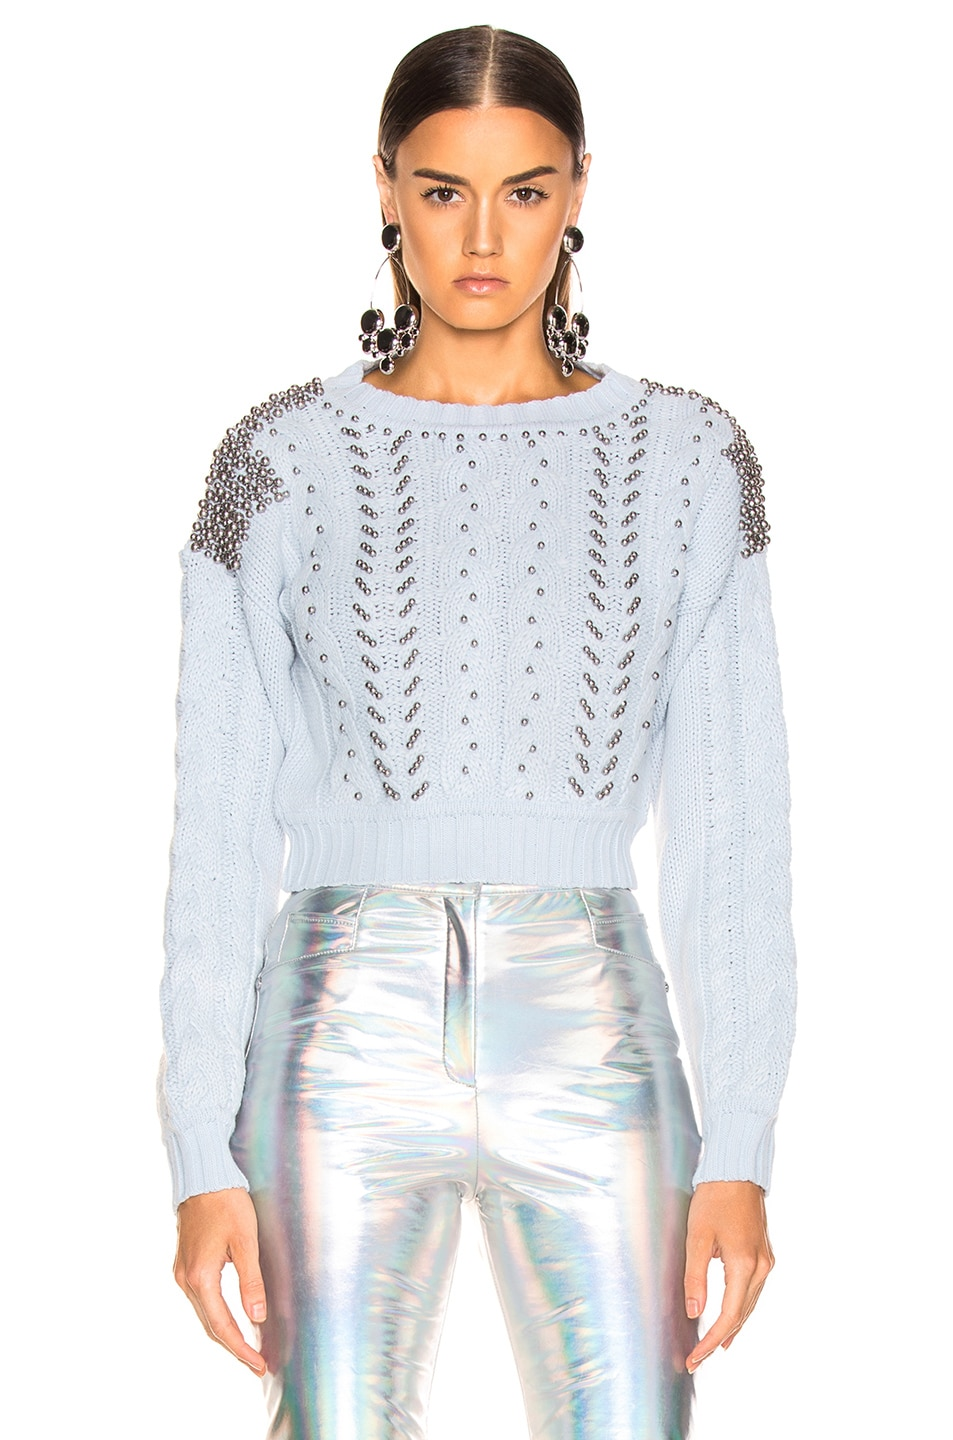 Patbo Studded Cropped Sweater In Light Blue Fwrd